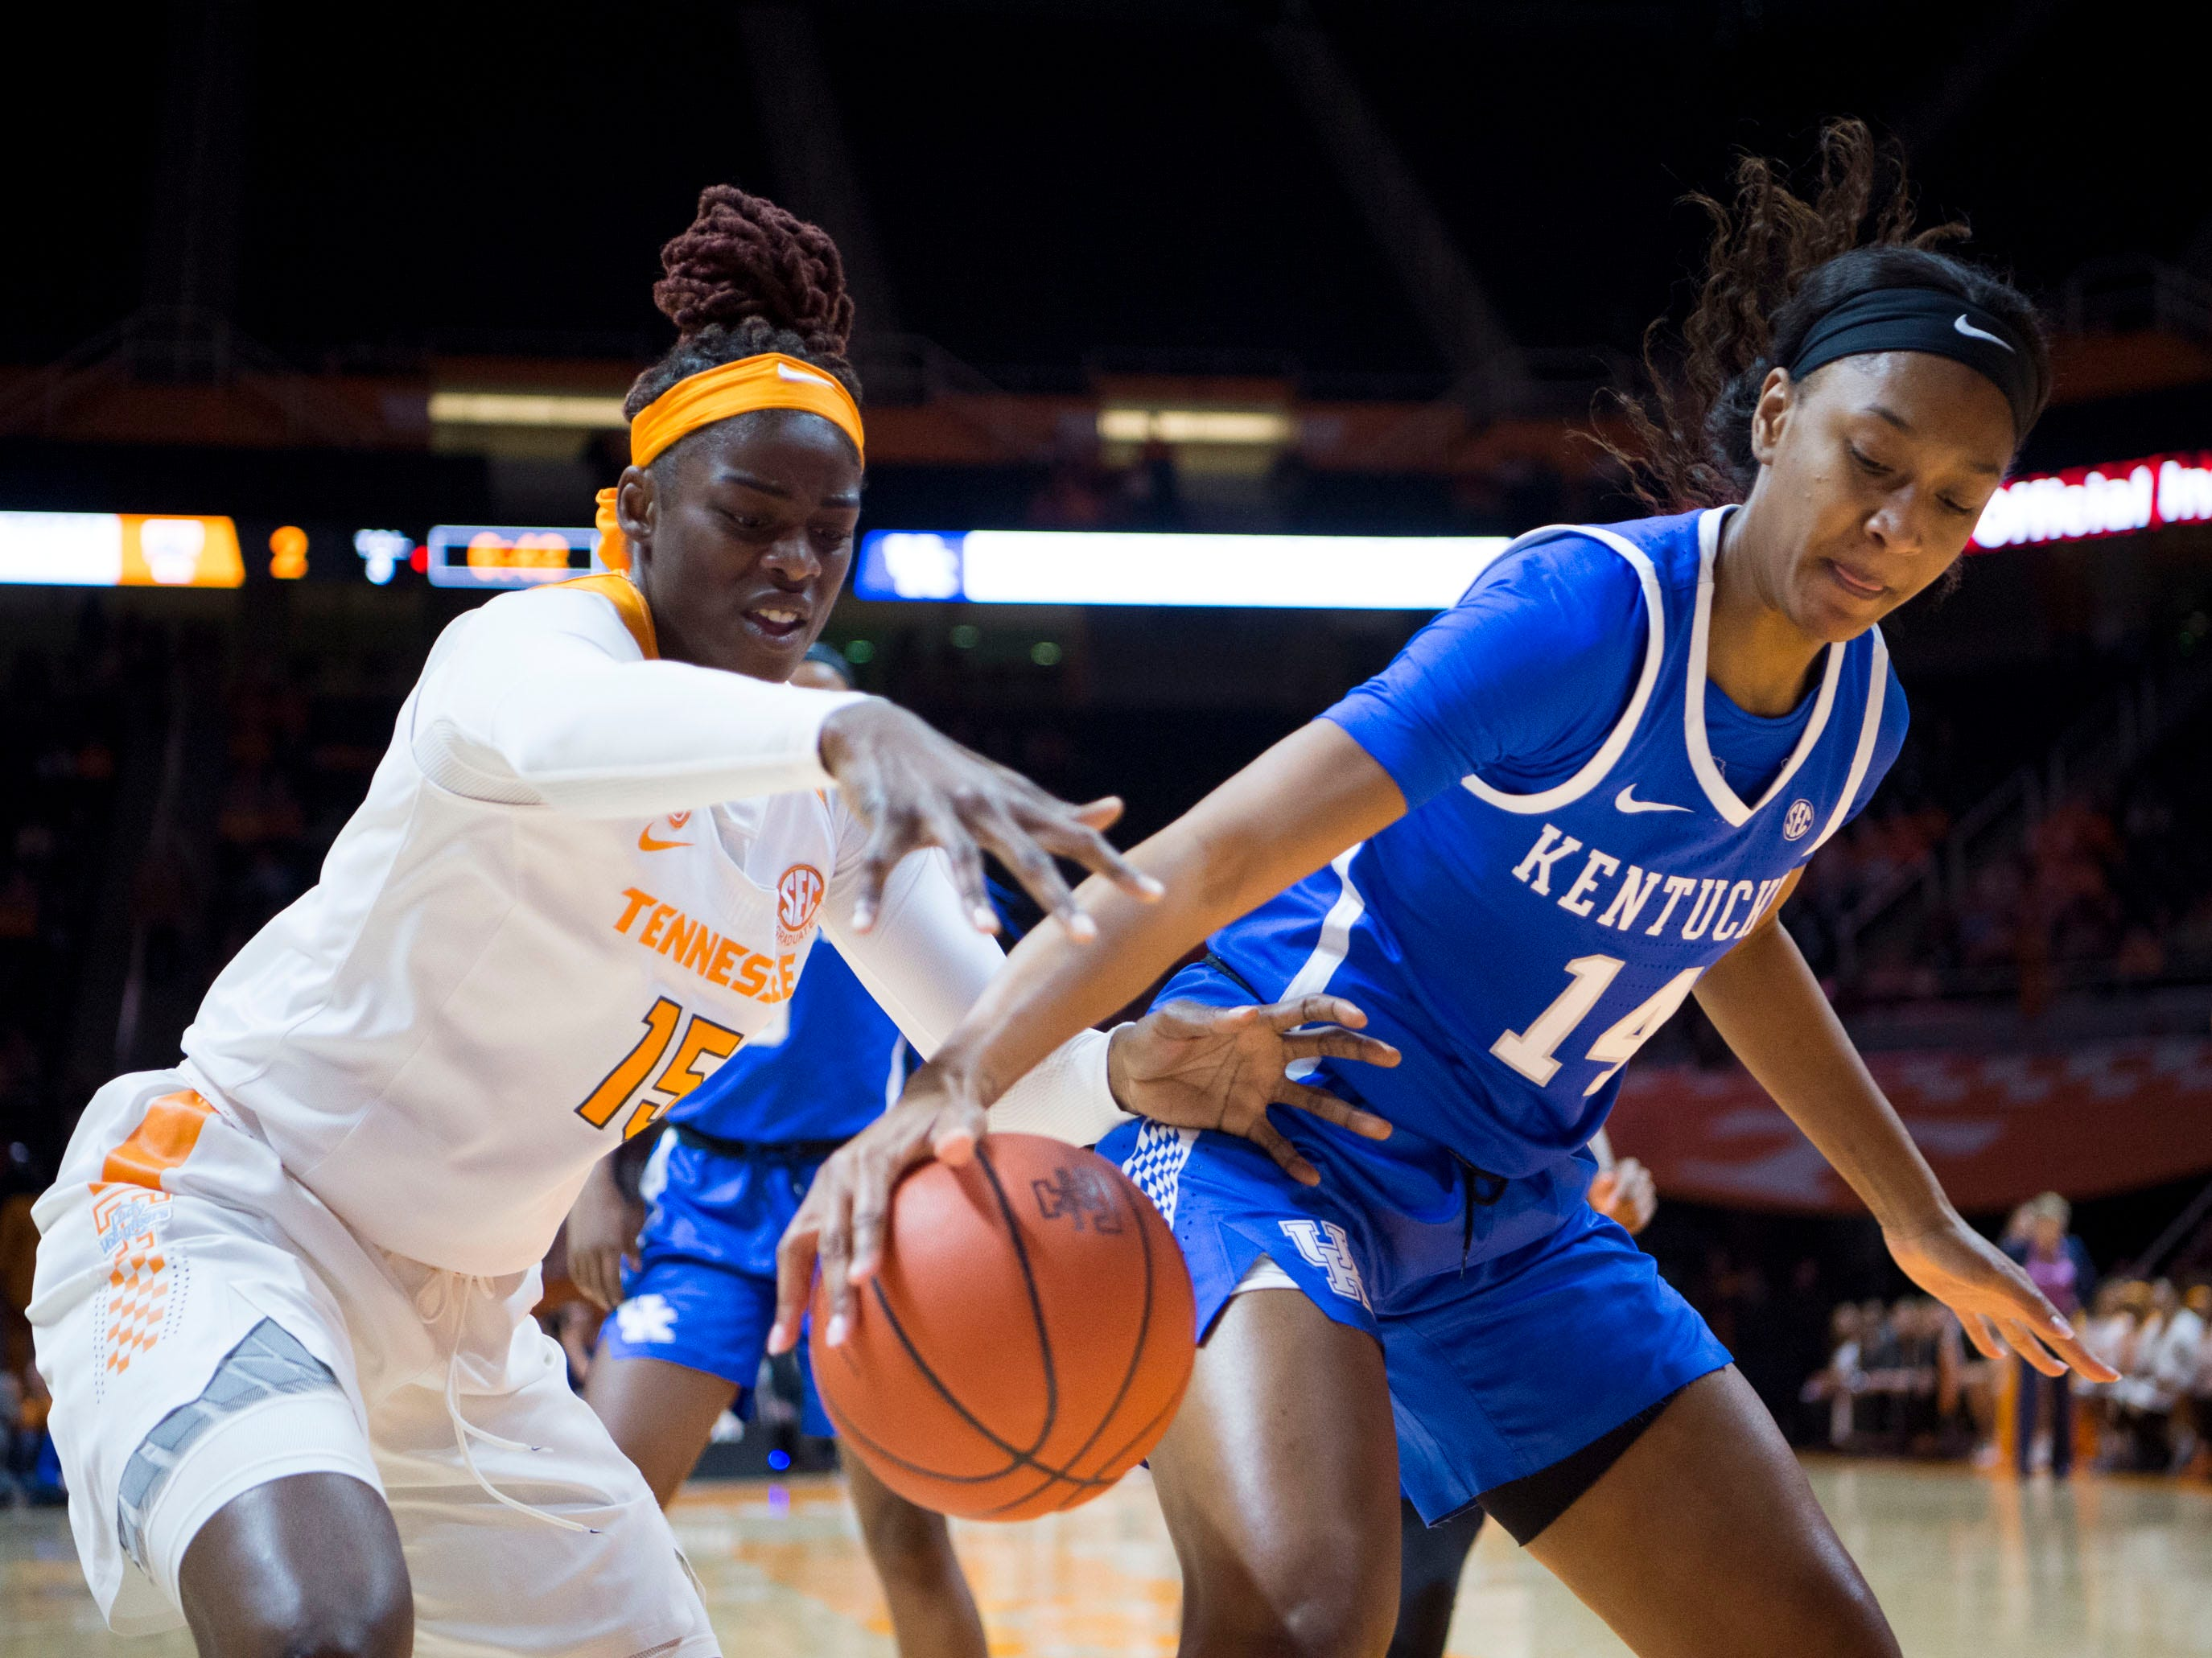 Kentucky's Tatyana Wyatt (14) tries to keep the ball from Tennessee's Cheridene Green (15) on Thursday, January 10, 2019.